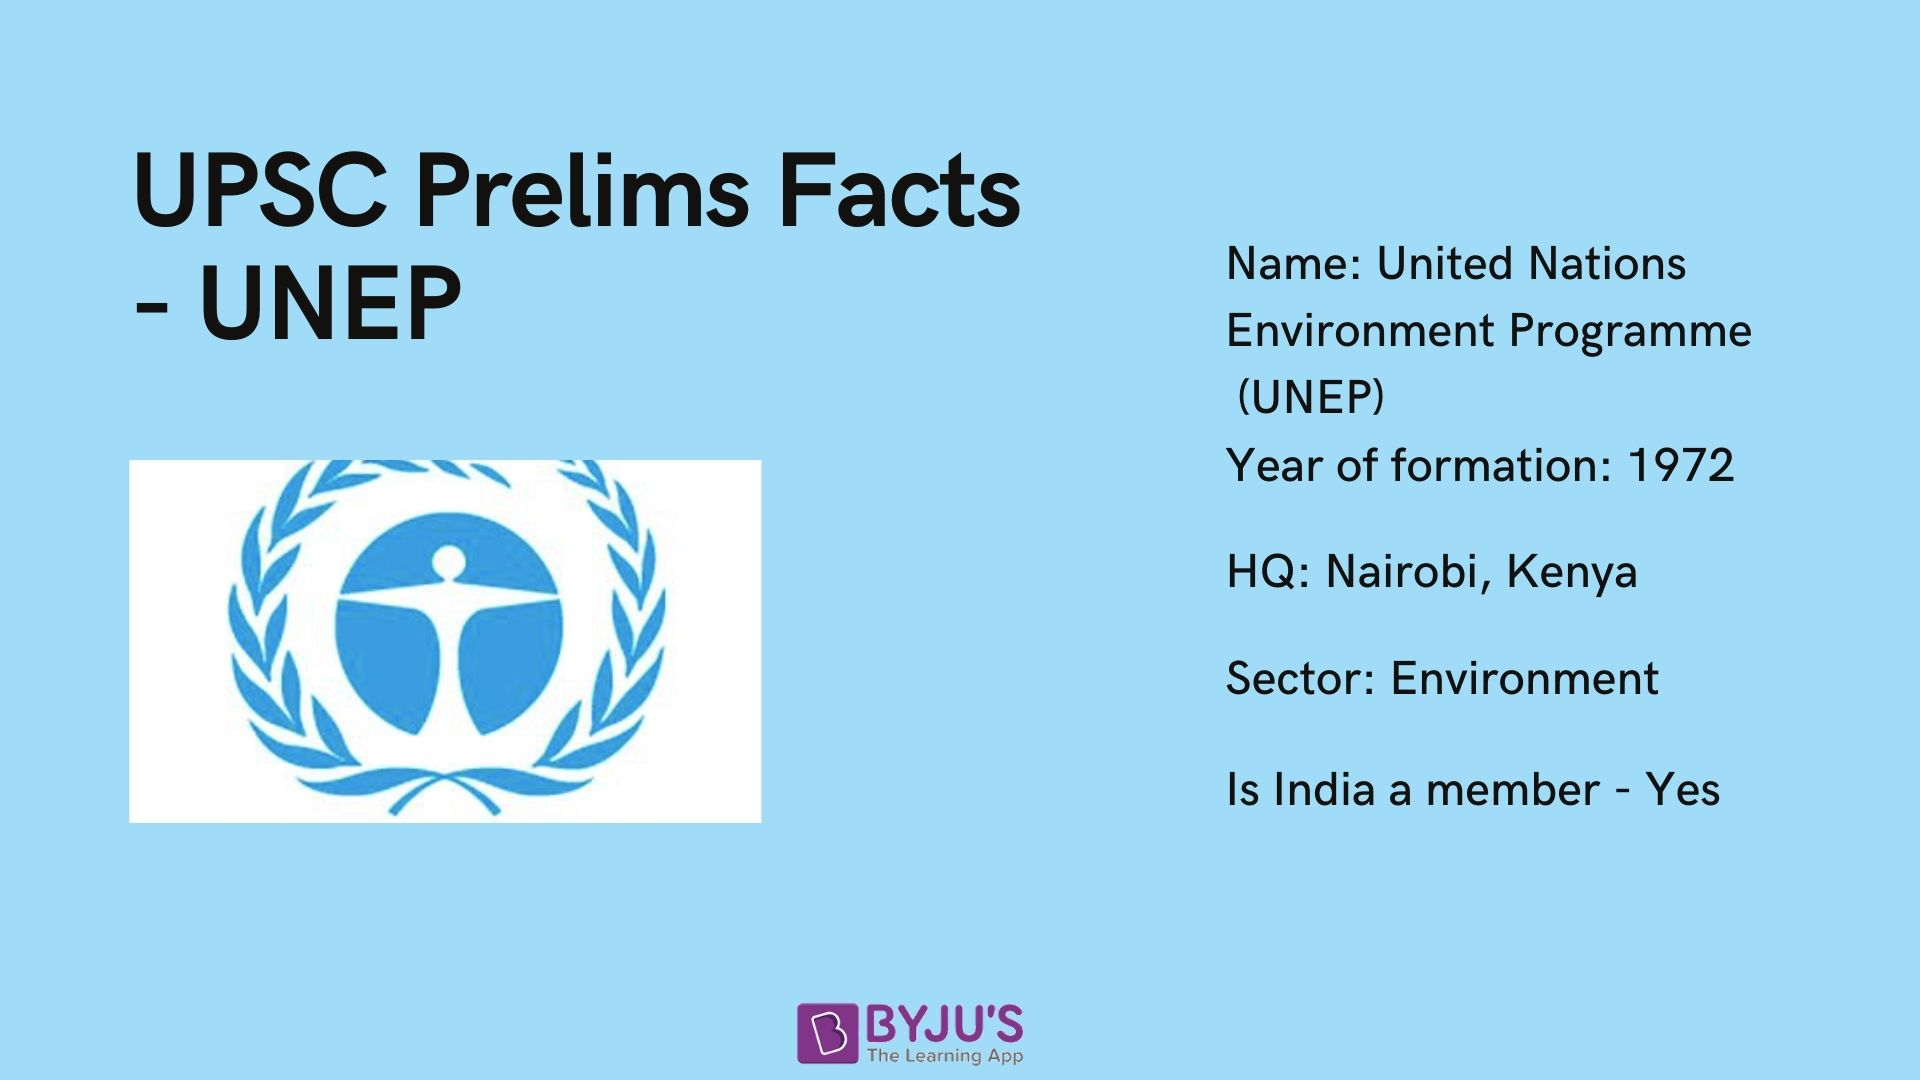 UNEP - UPSC Prelims Facts